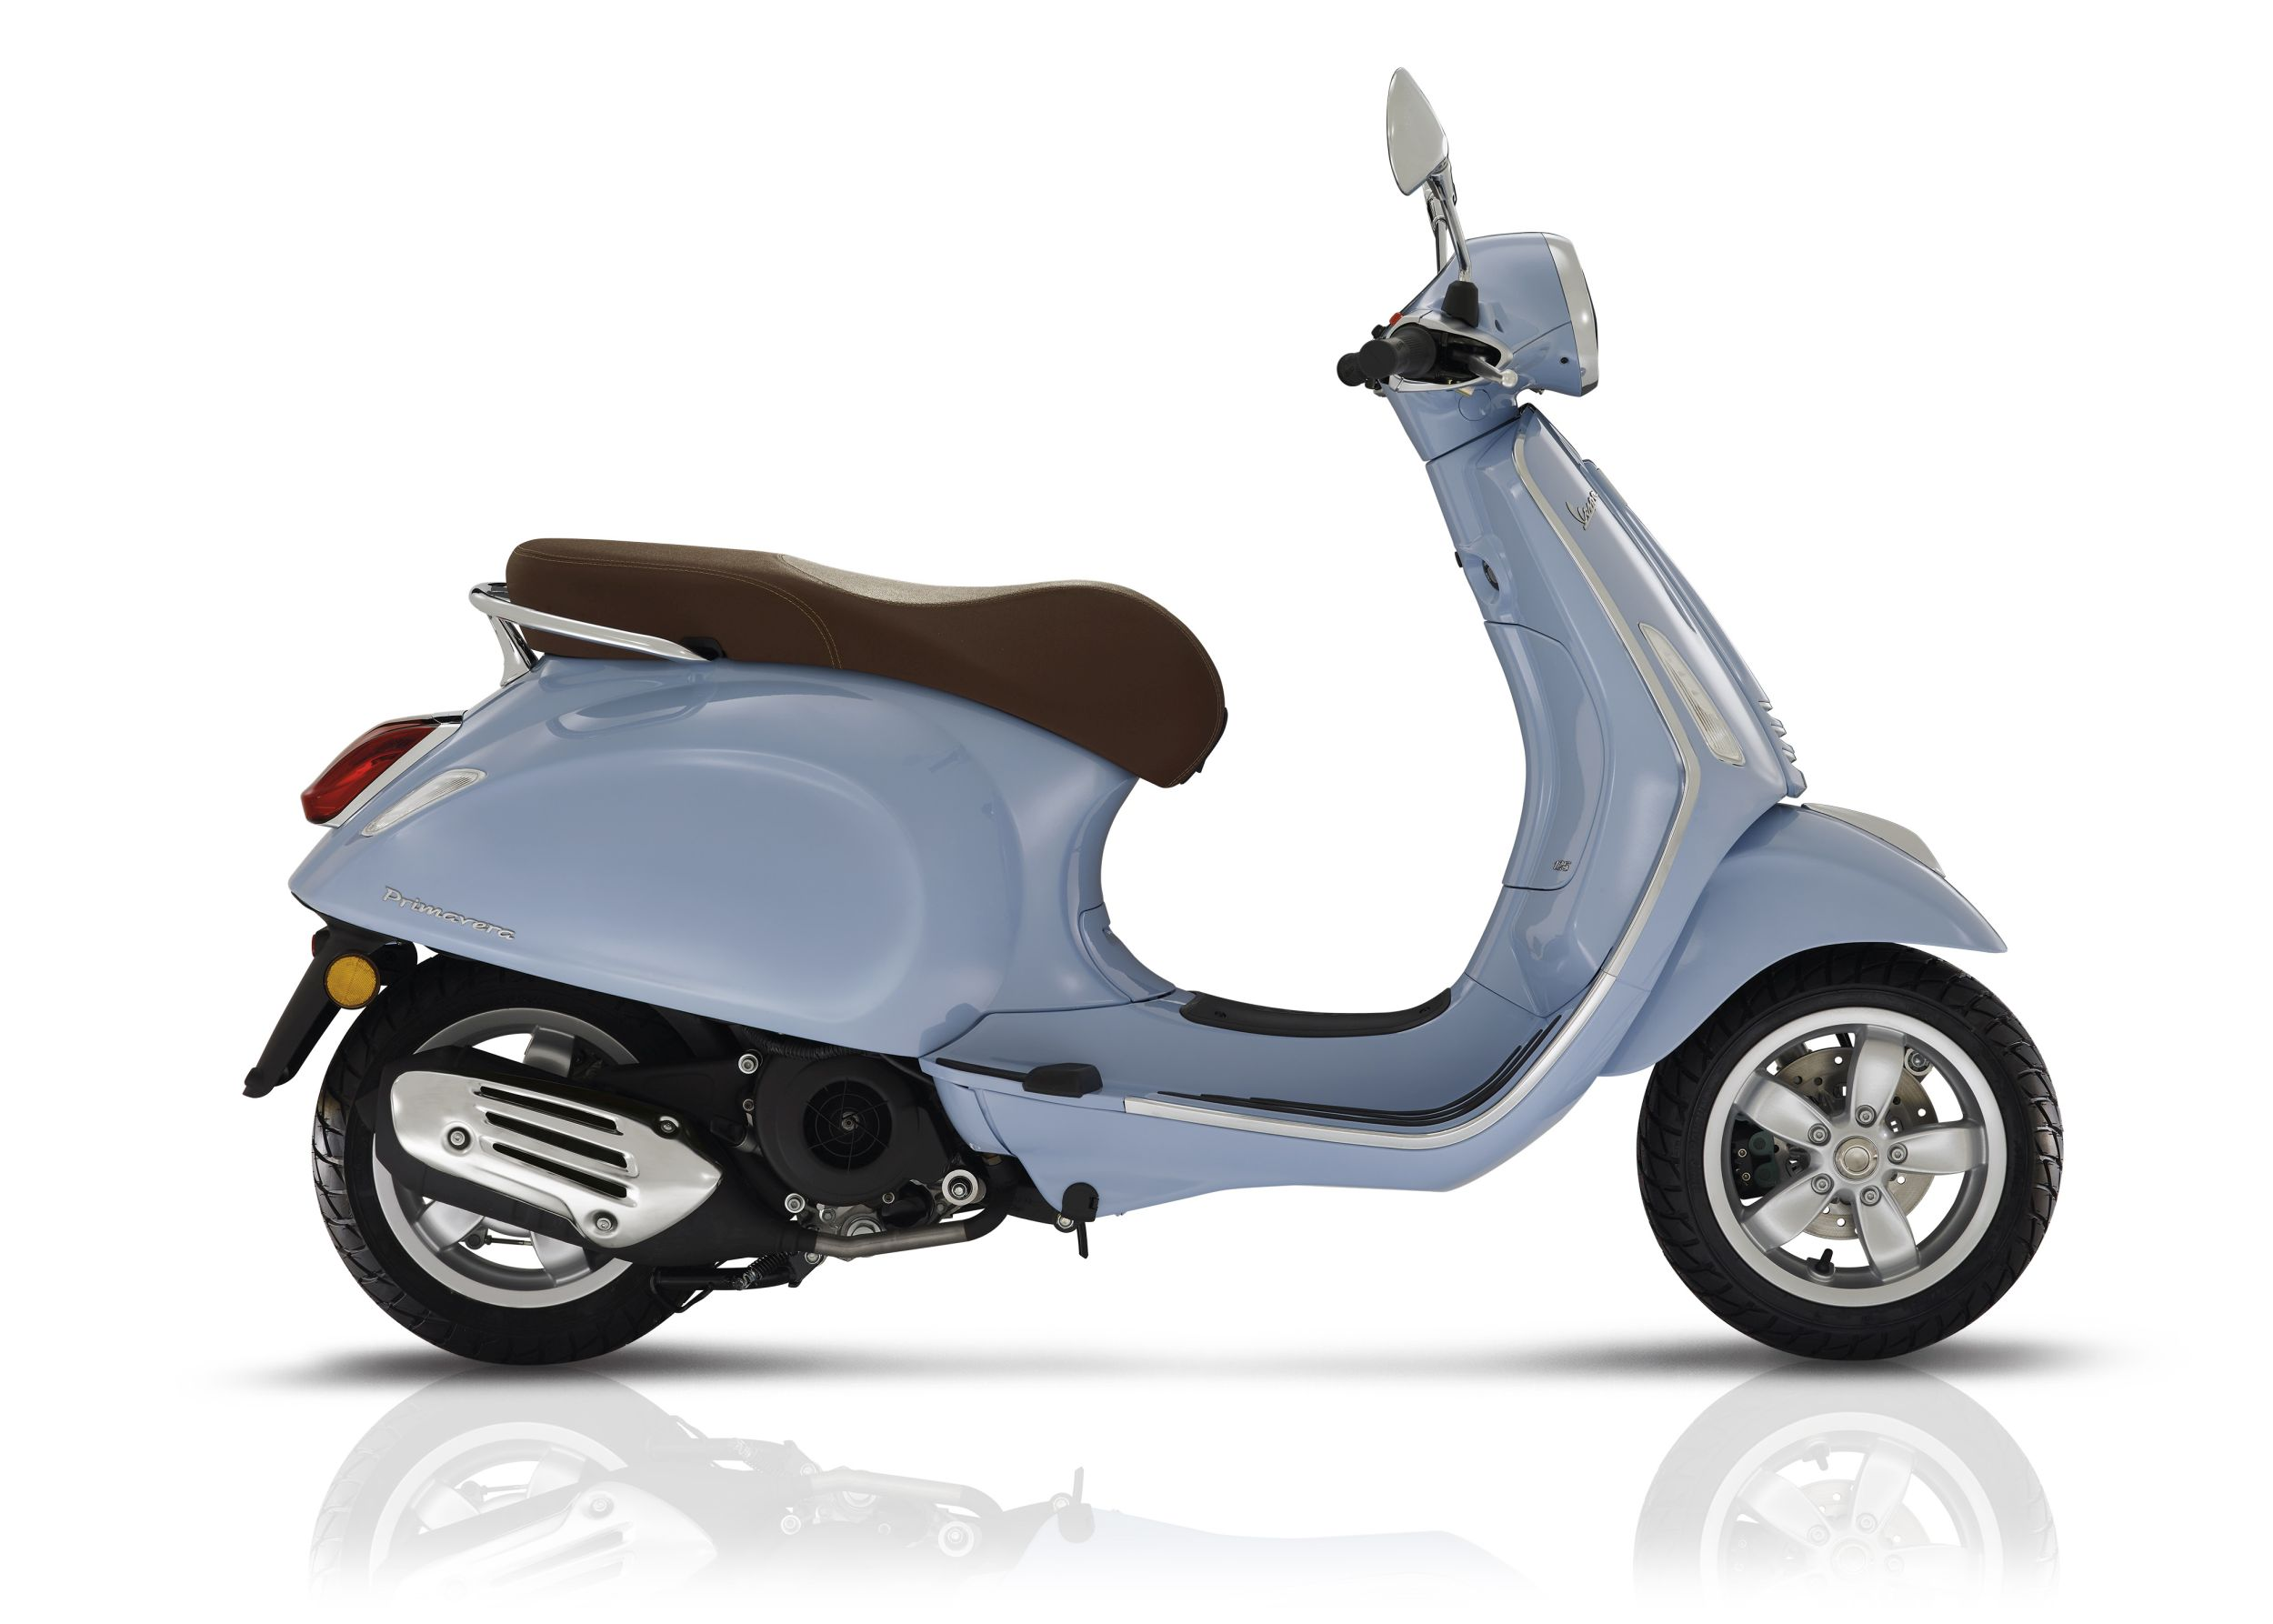 gebrauchte vespa primavera 125 i e 3v motorr der kaufen. Black Bedroom Furniture Sets. Home Design Ideas